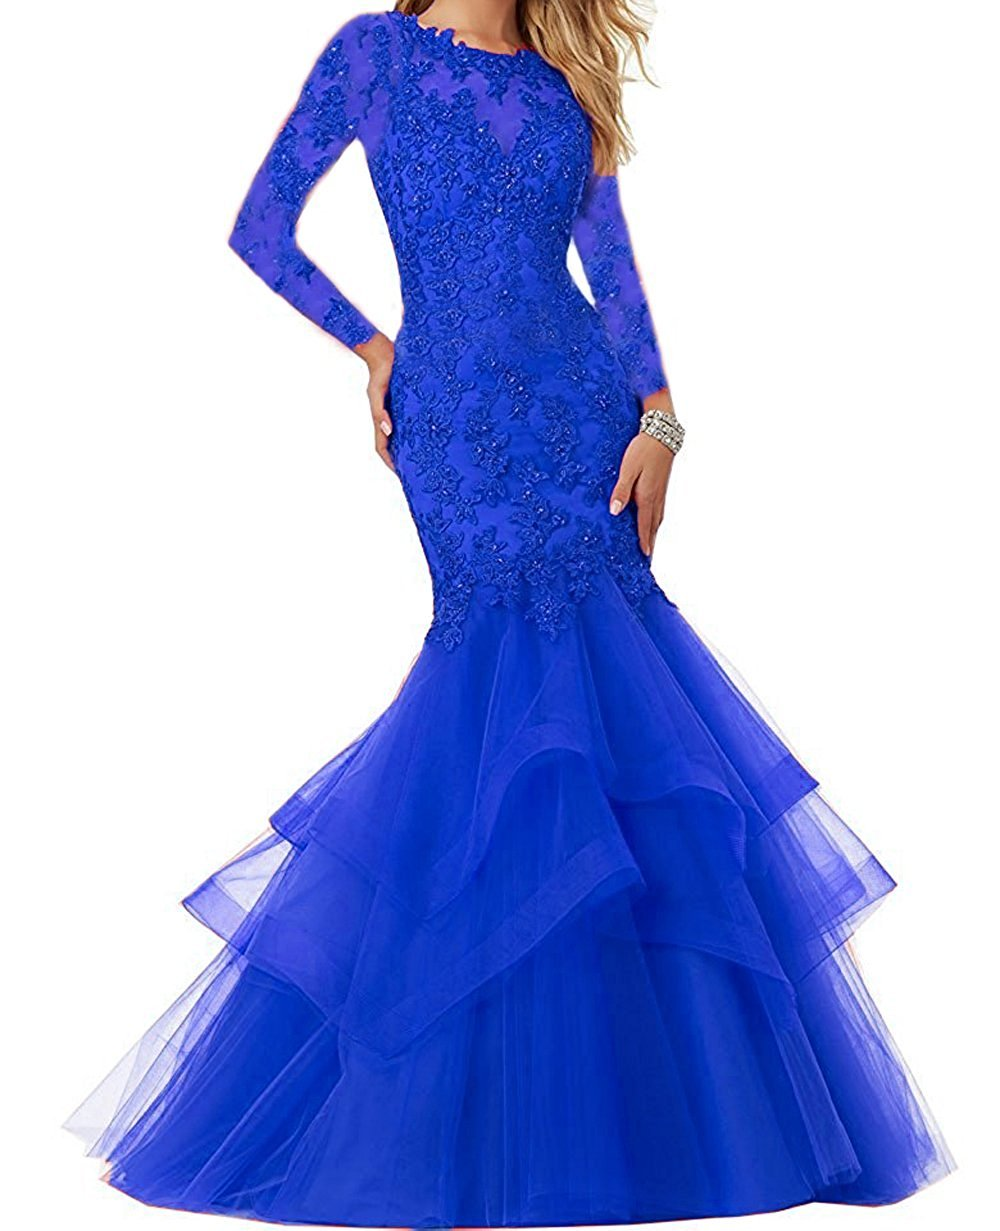 Bonnie Beaded Lace Embroidered Prom Dresses 2018 Long Sexy Mermaid Formal Ball Gown With Long Sleeves BS014